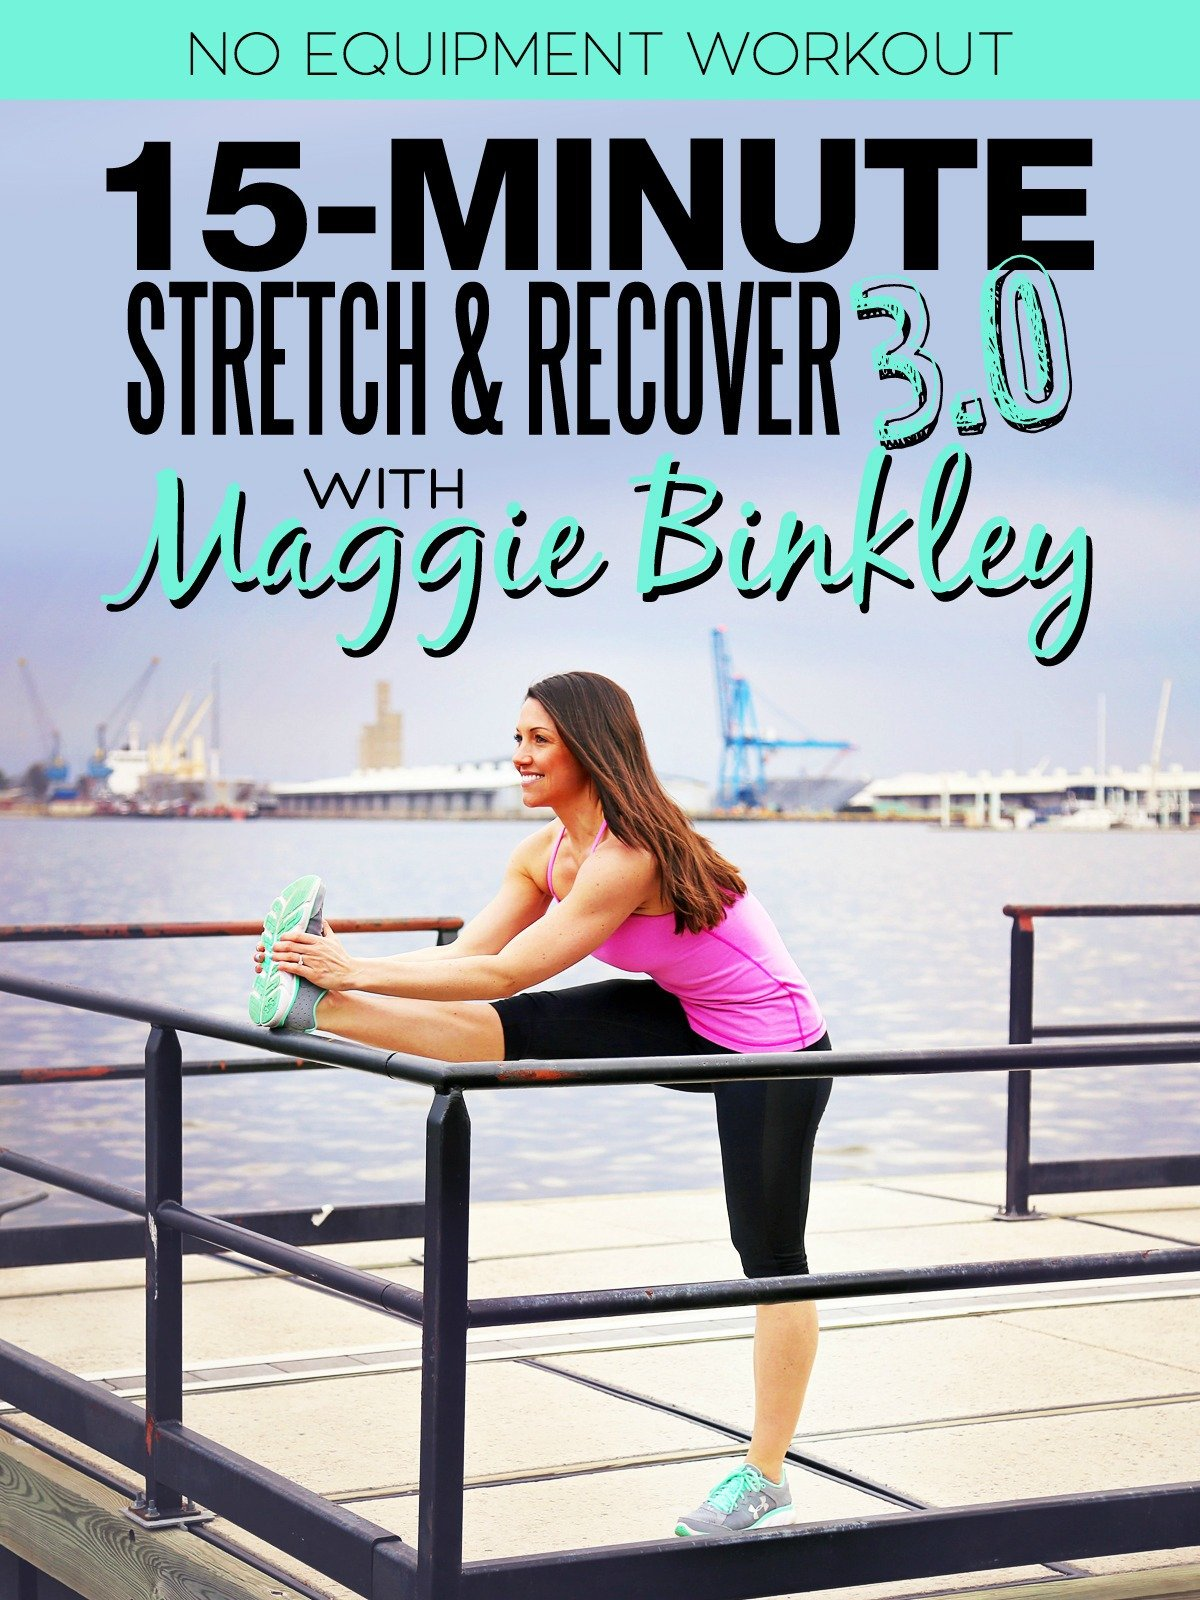 15-Minute Stretch & Recover 3.0 Workout